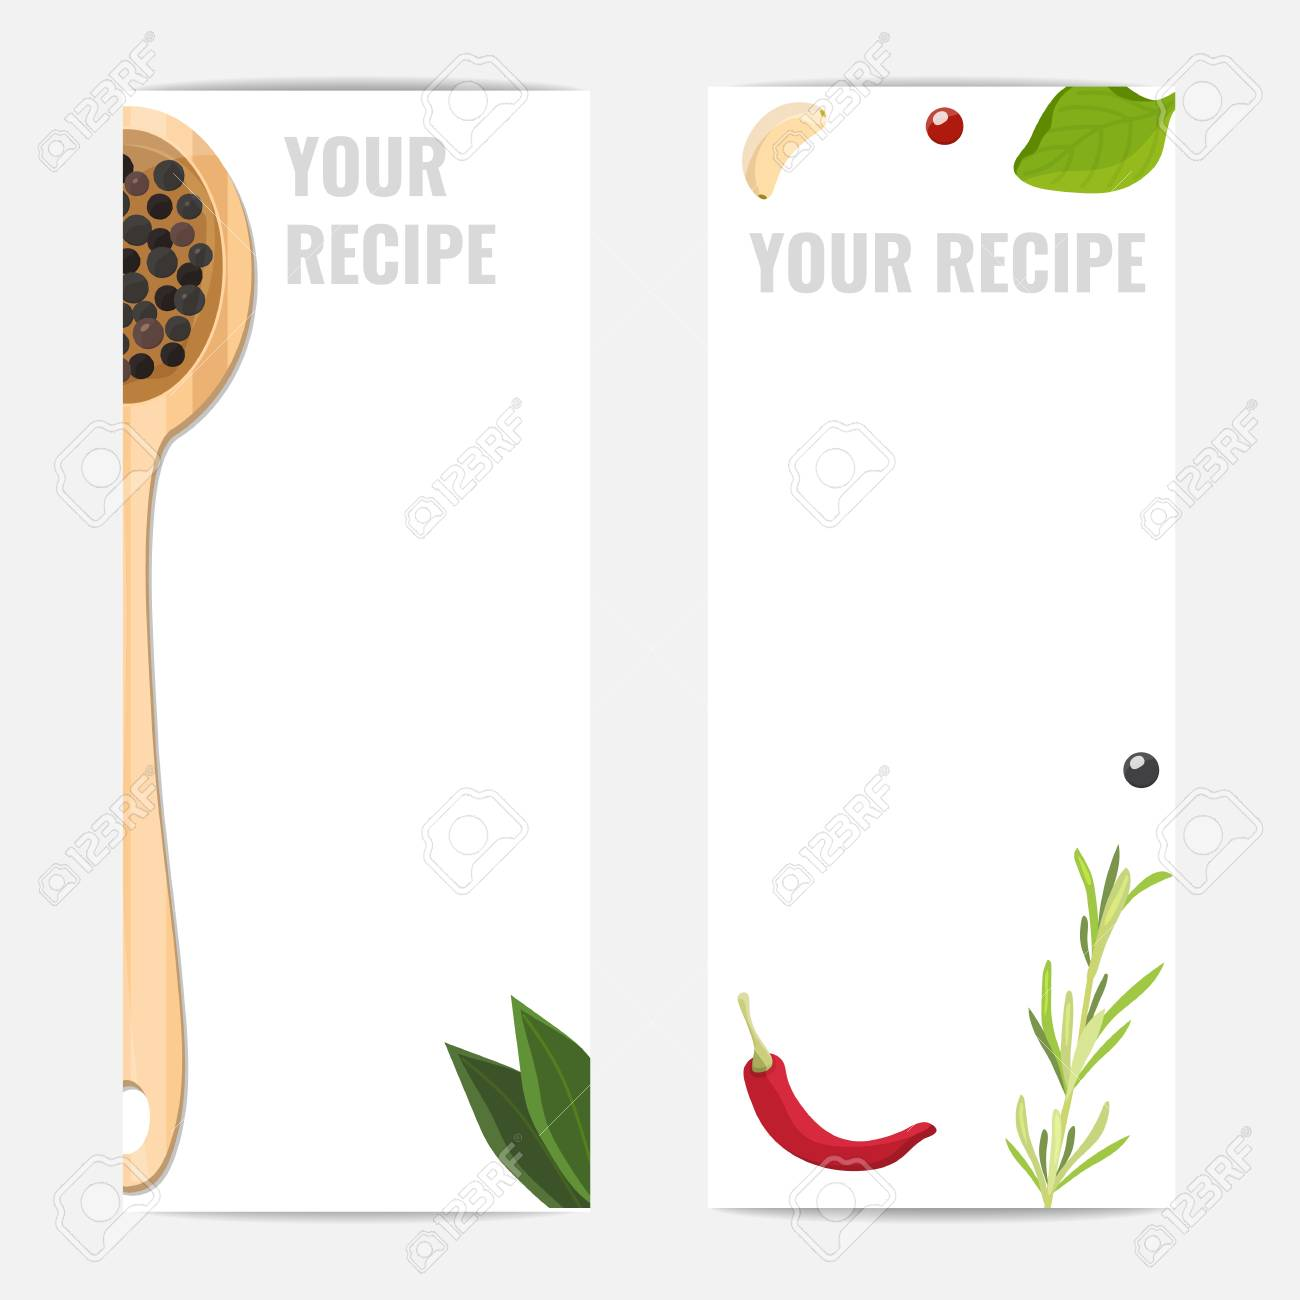 hight resolution of background layout for recipes menu banners for cooking studio cooking school home